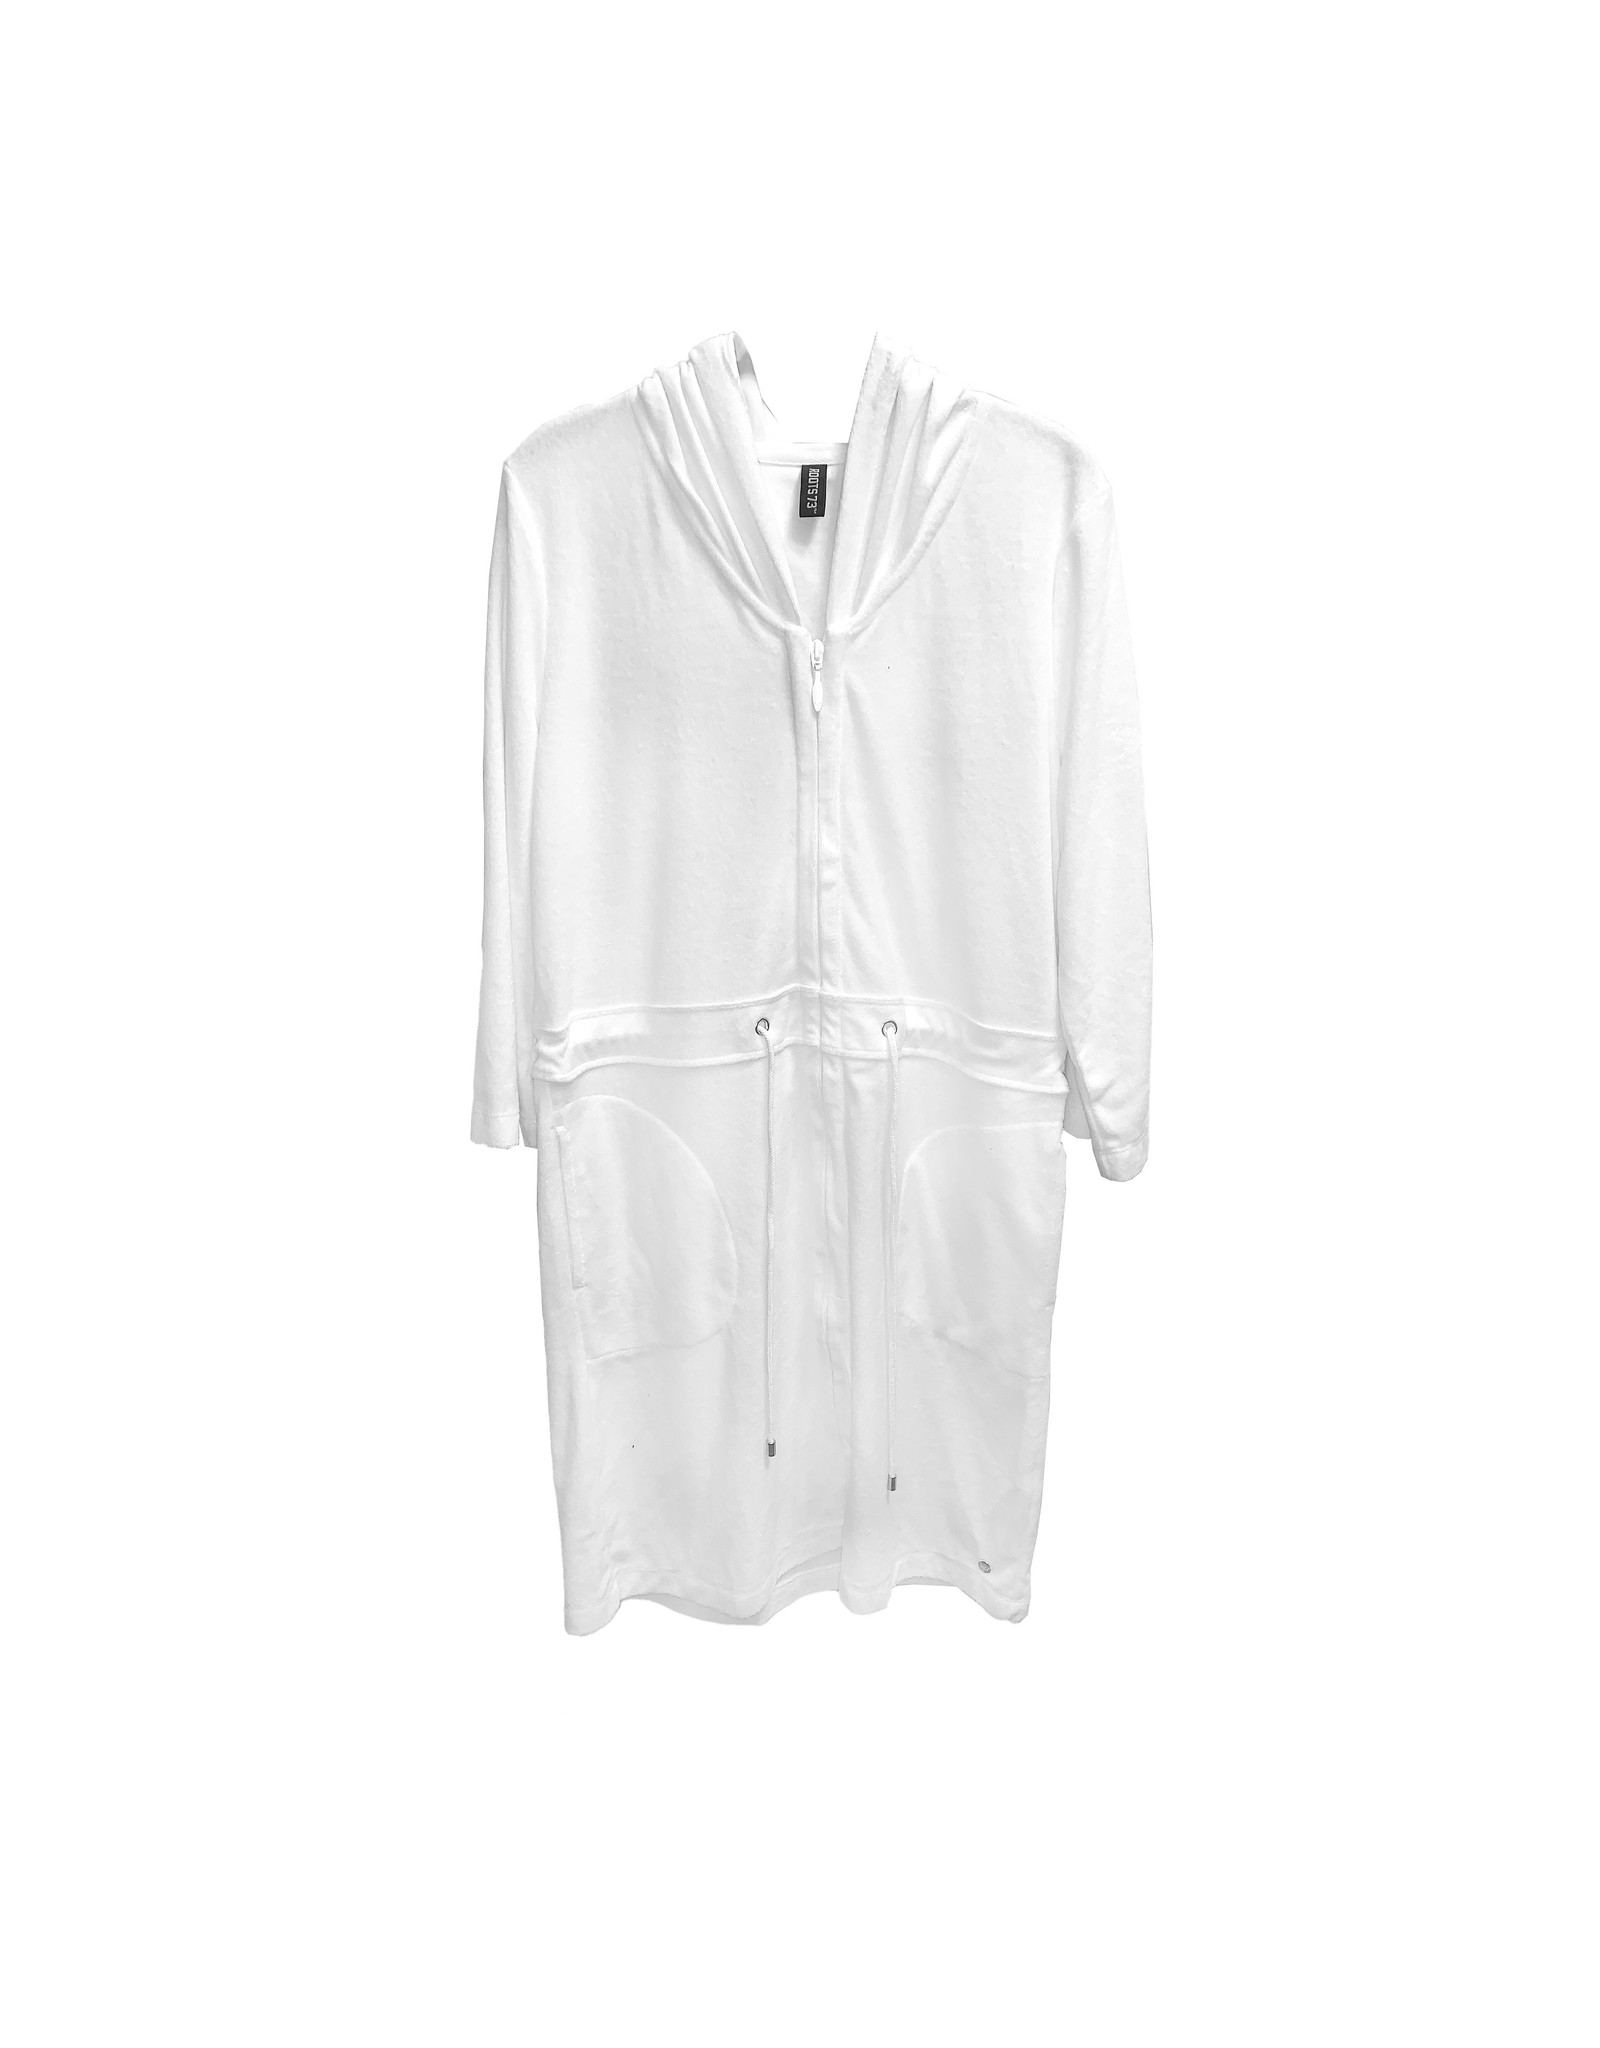 Roots 73 Roots 73  Hooded Terry Zip Cover-up